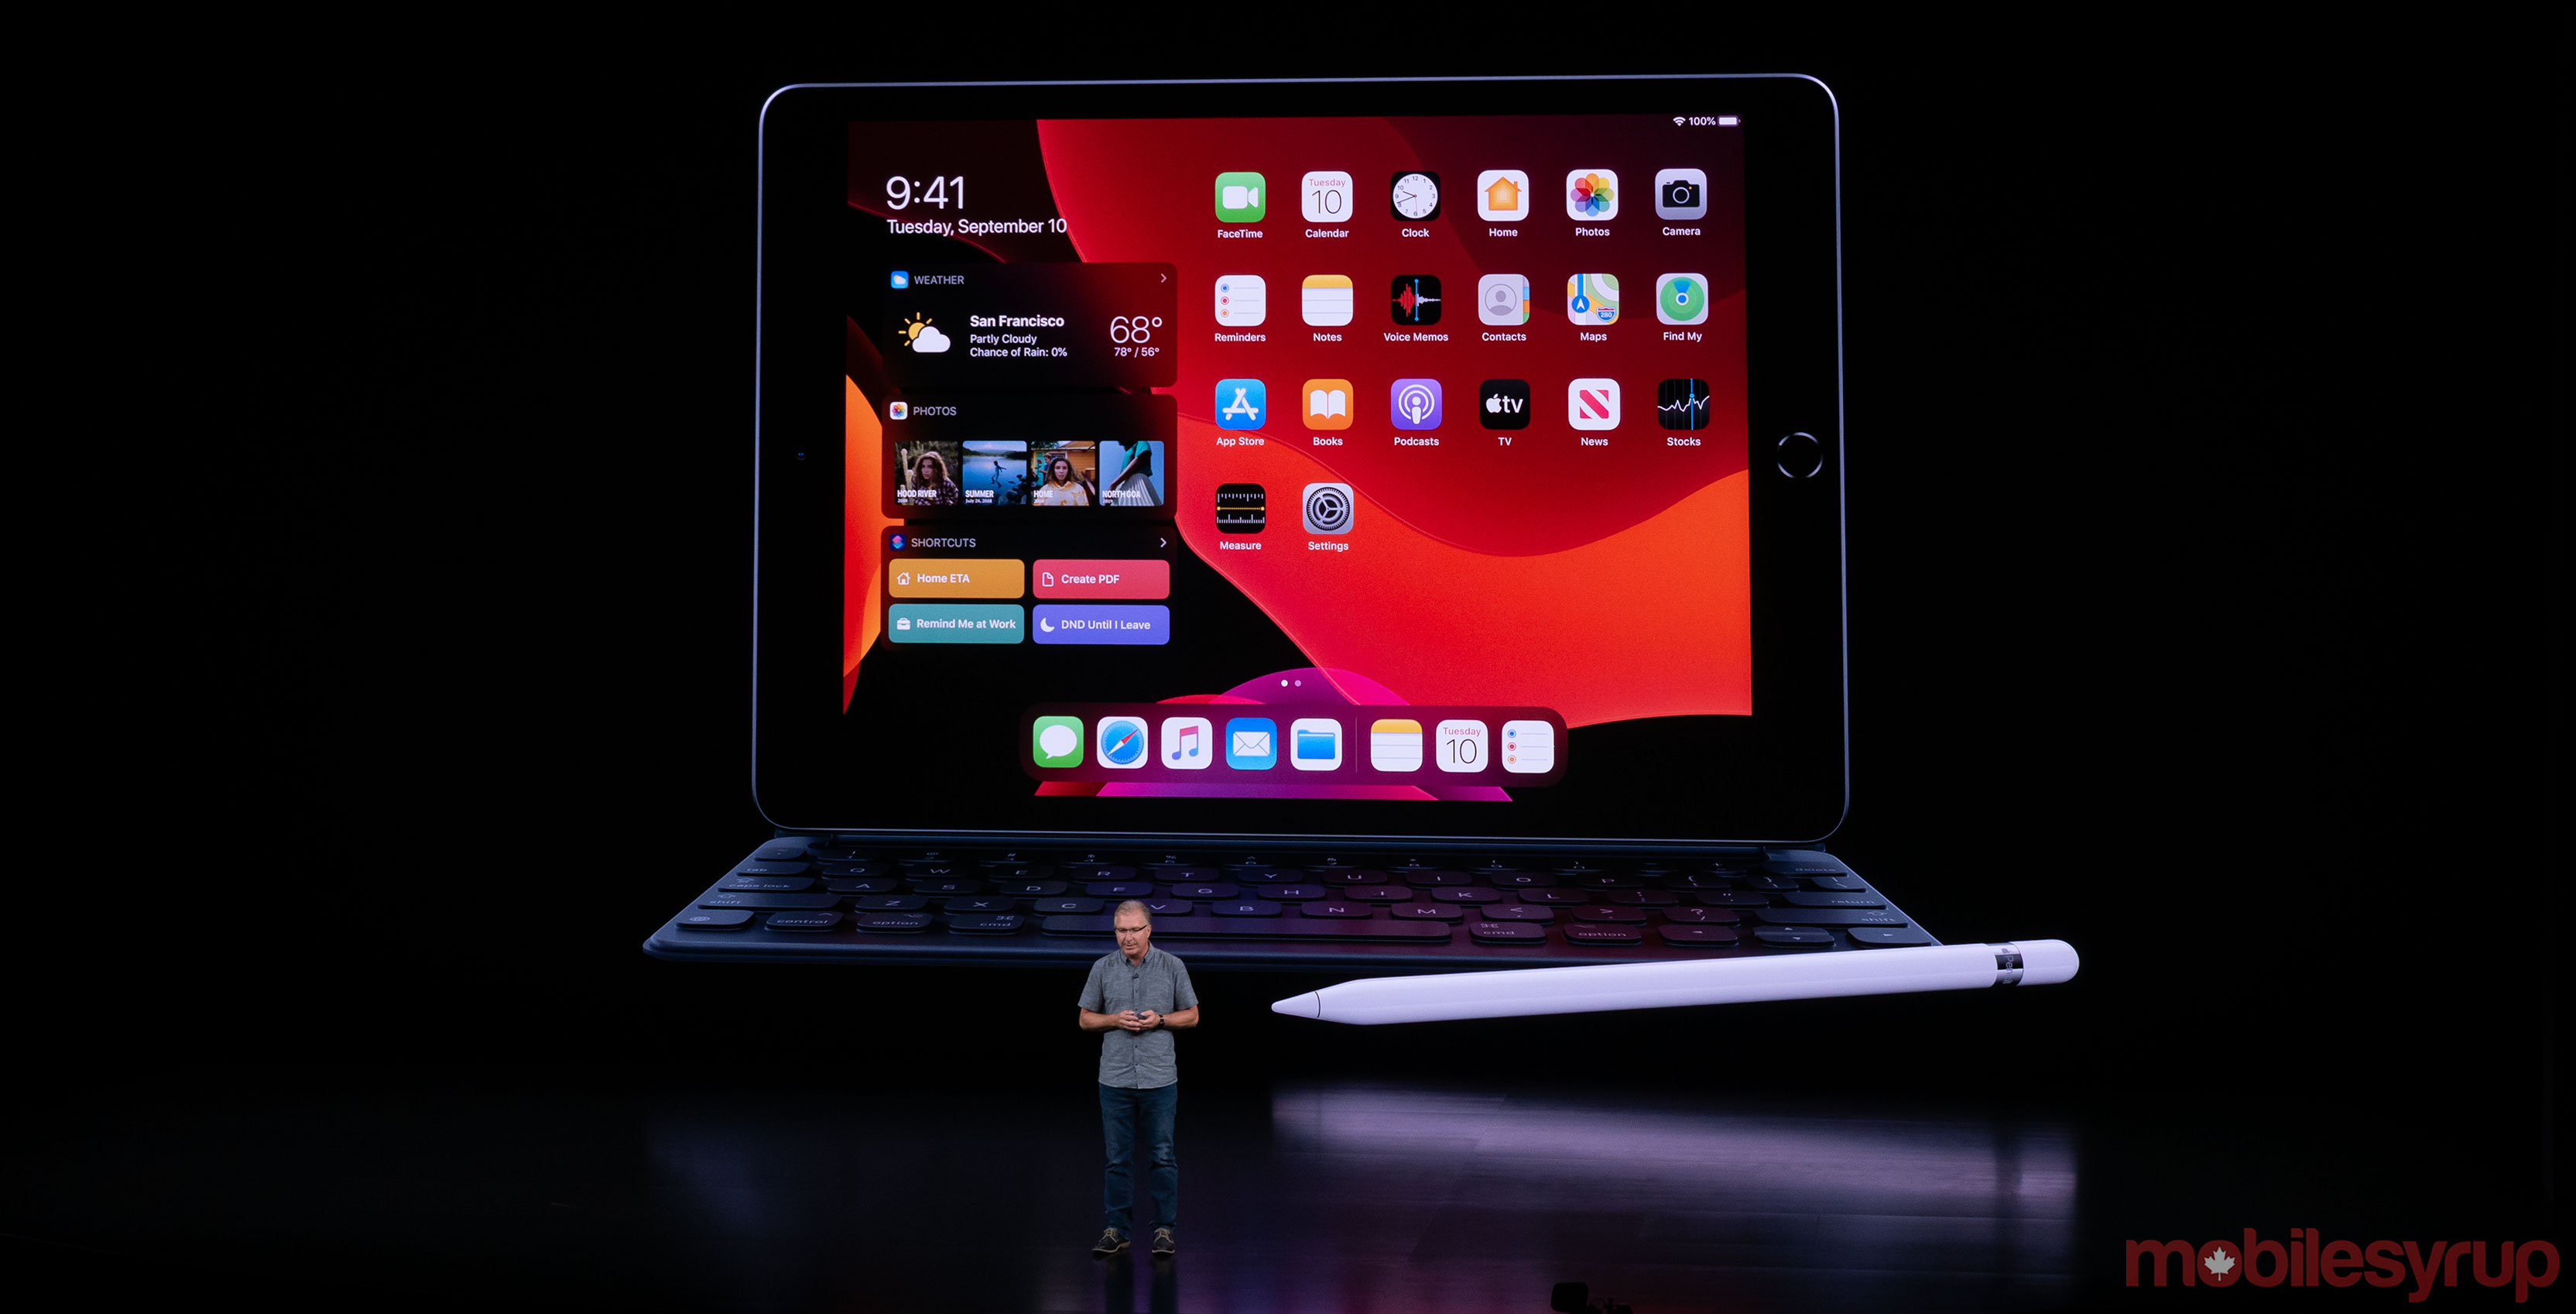 Costco Offering The New 10 2 Inch Ipad For Just 346 99 For Black Friday All switch xci torrents new link updated. costco offering the new 10 2 inch ipad